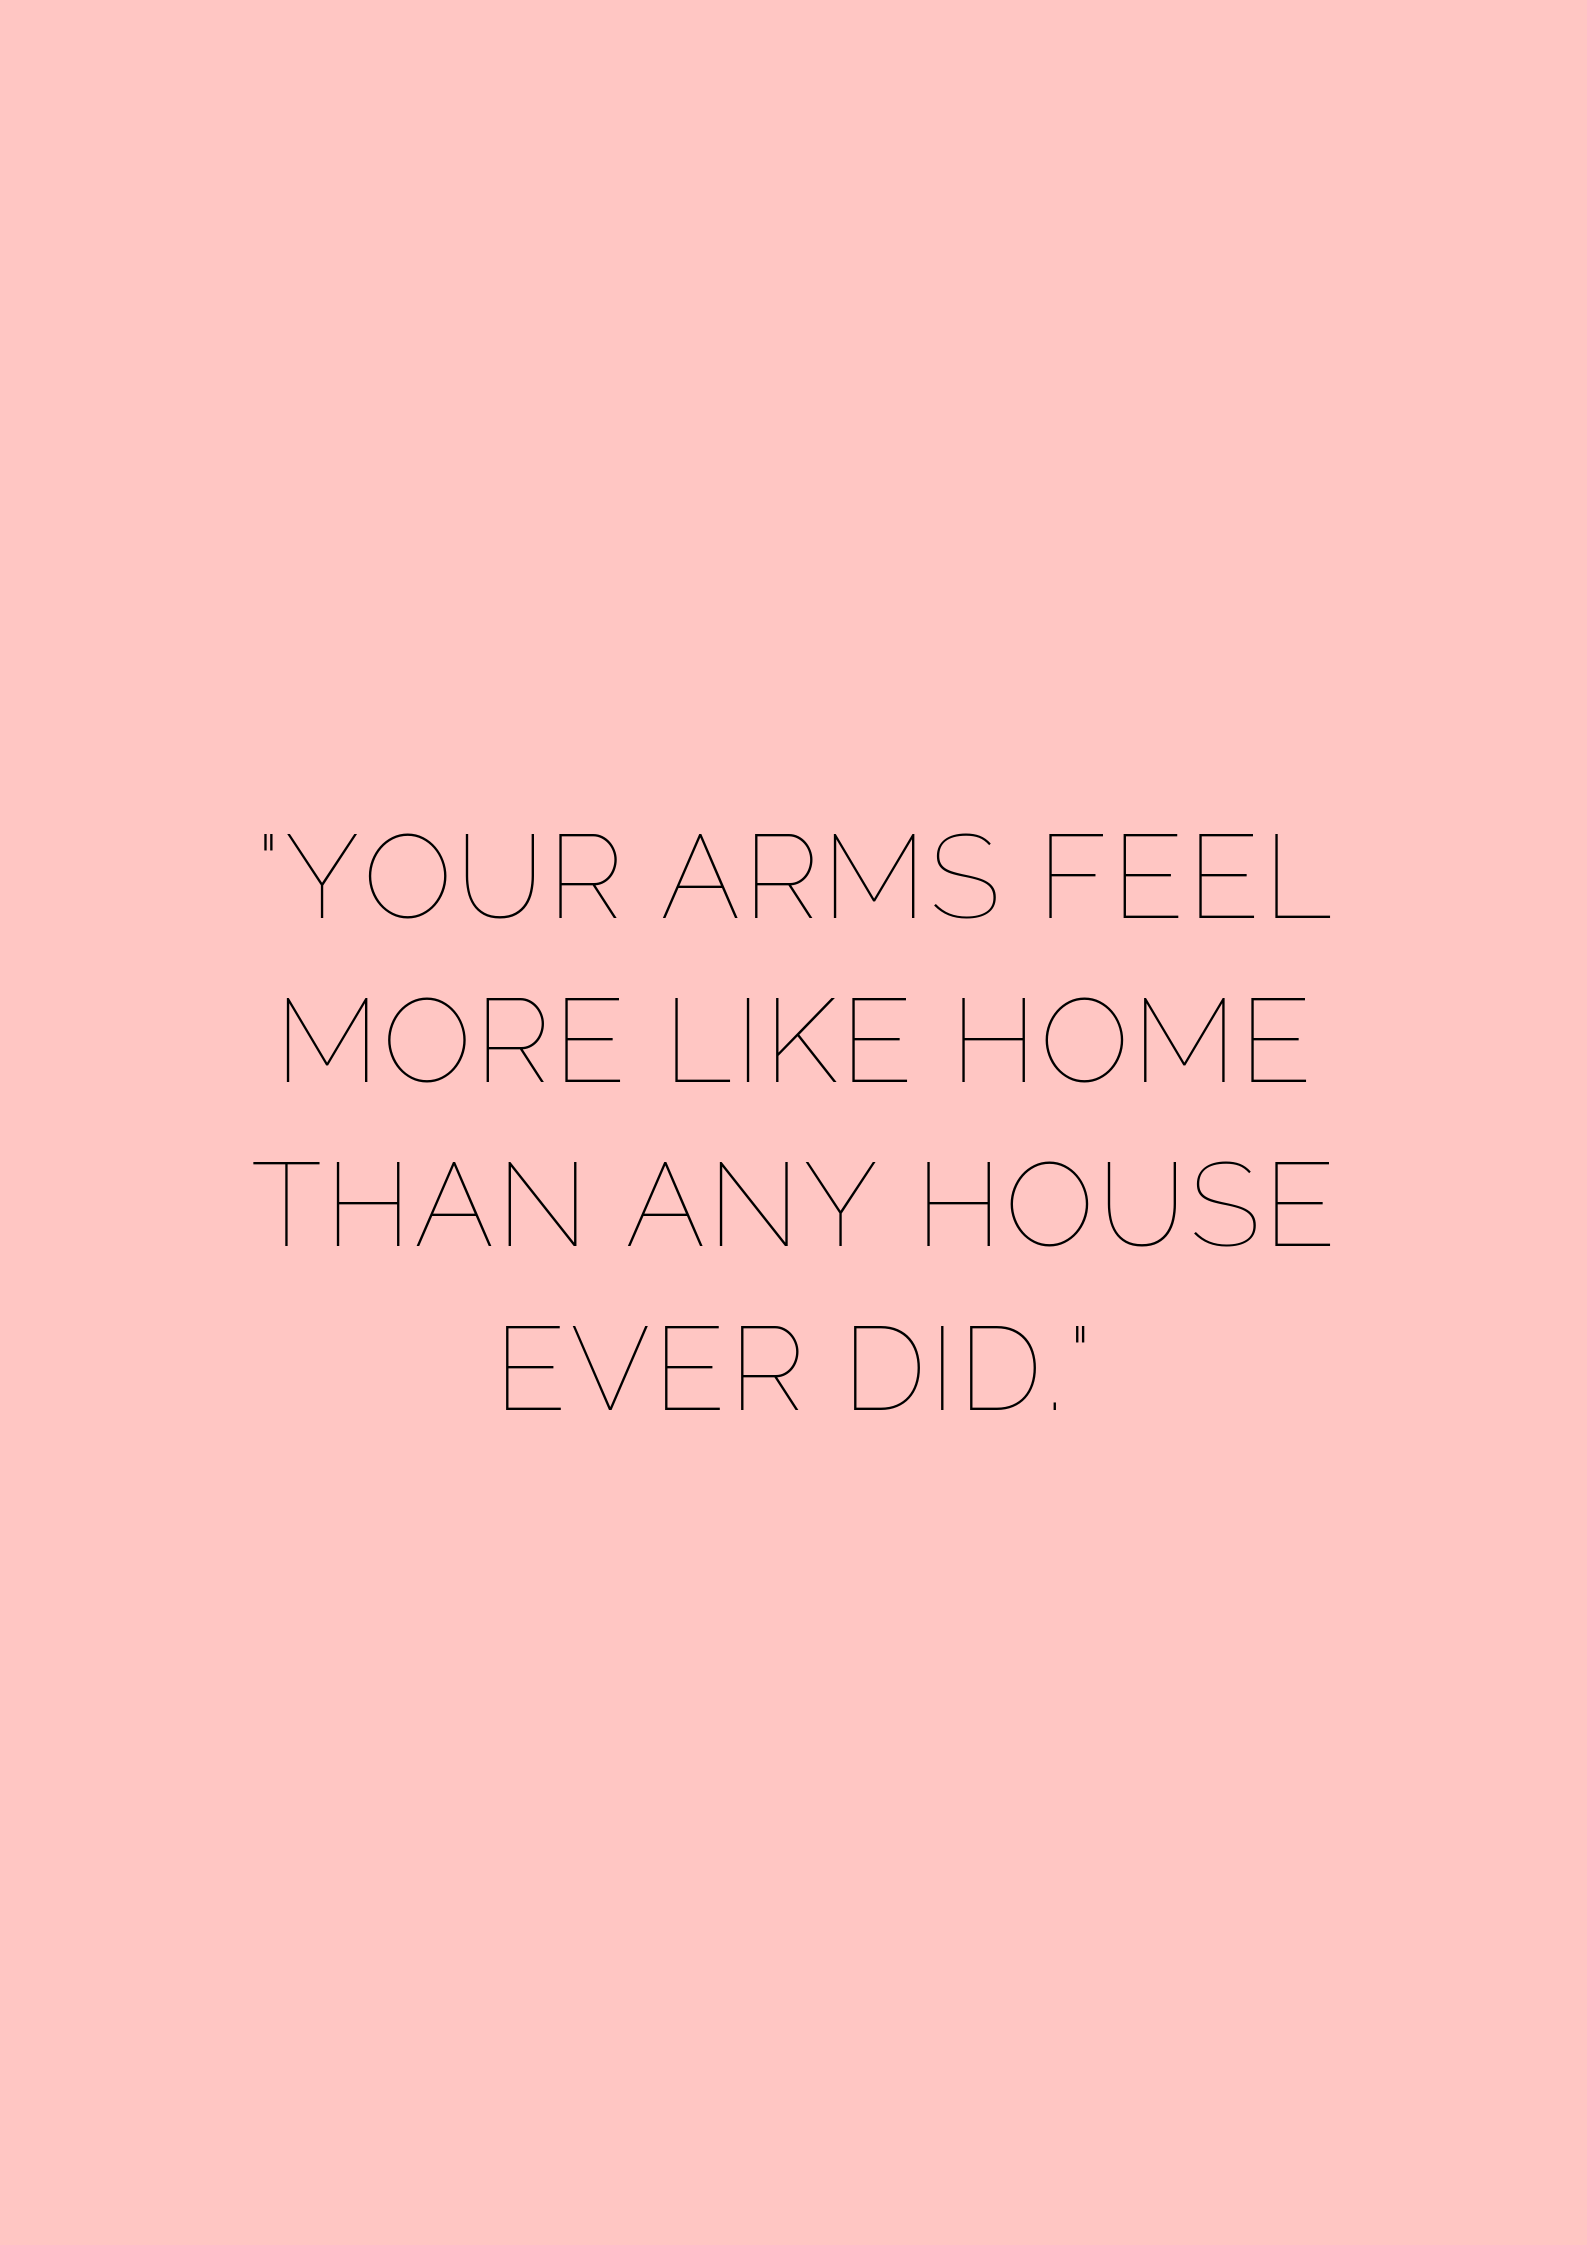 7 More Cute Love Quotes for Her  Quotes for your crush, Cute